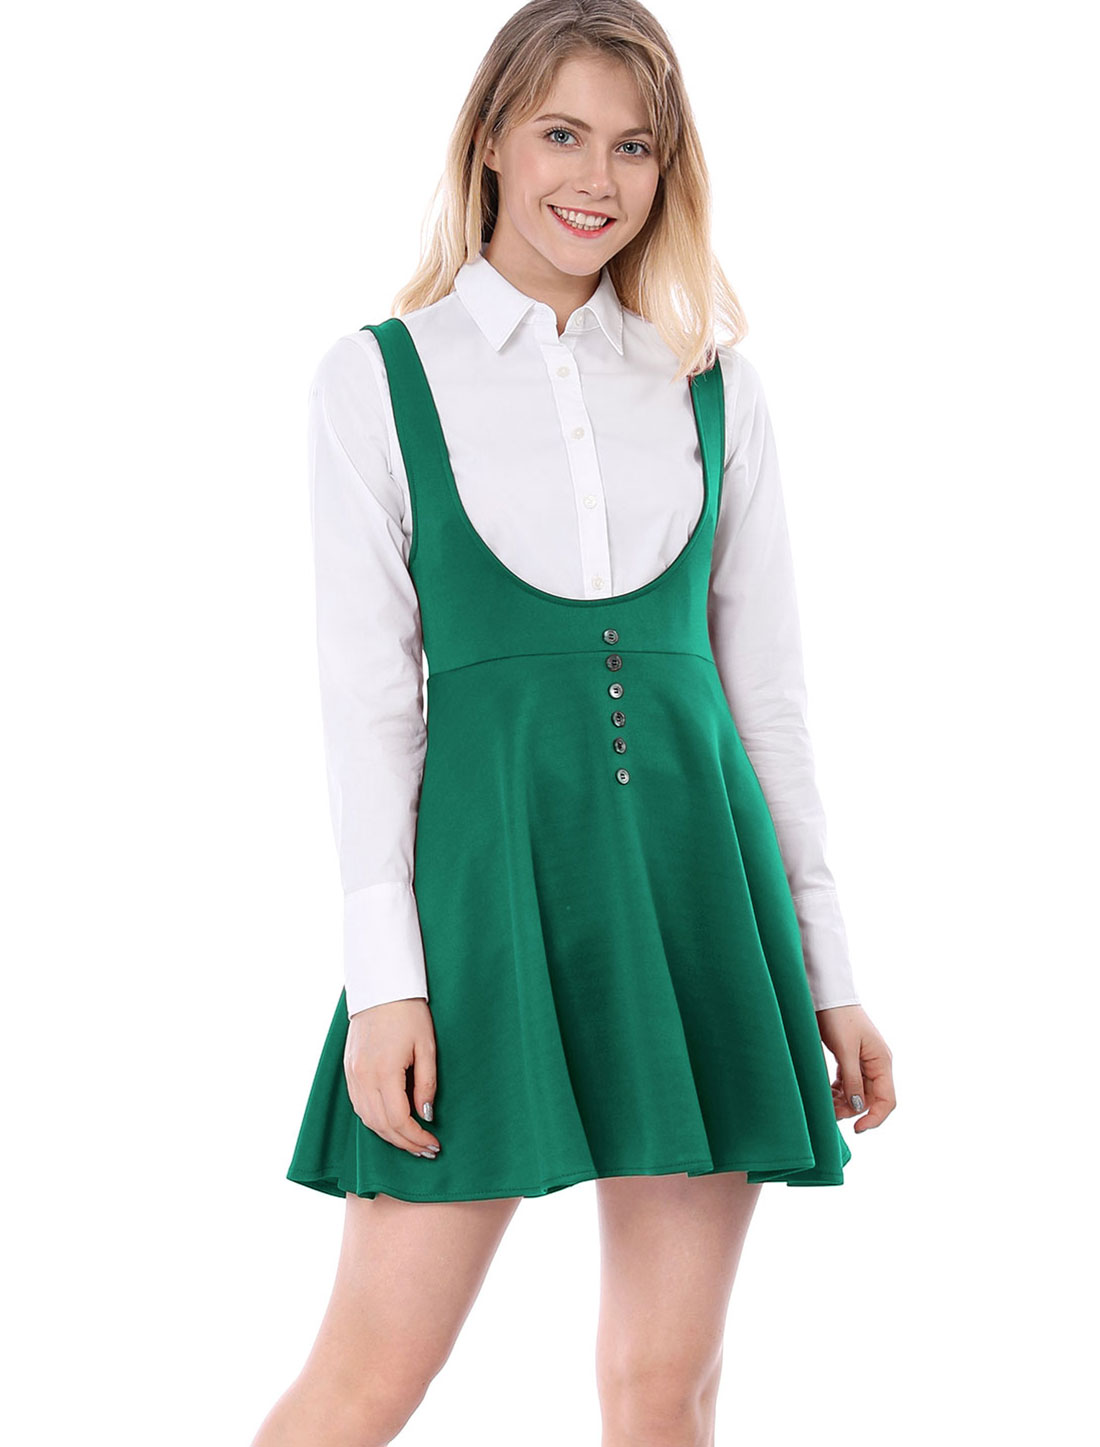 Allegra K Women Button Decor Flared Hem Above Knee Dress Suspender Skirt Green S